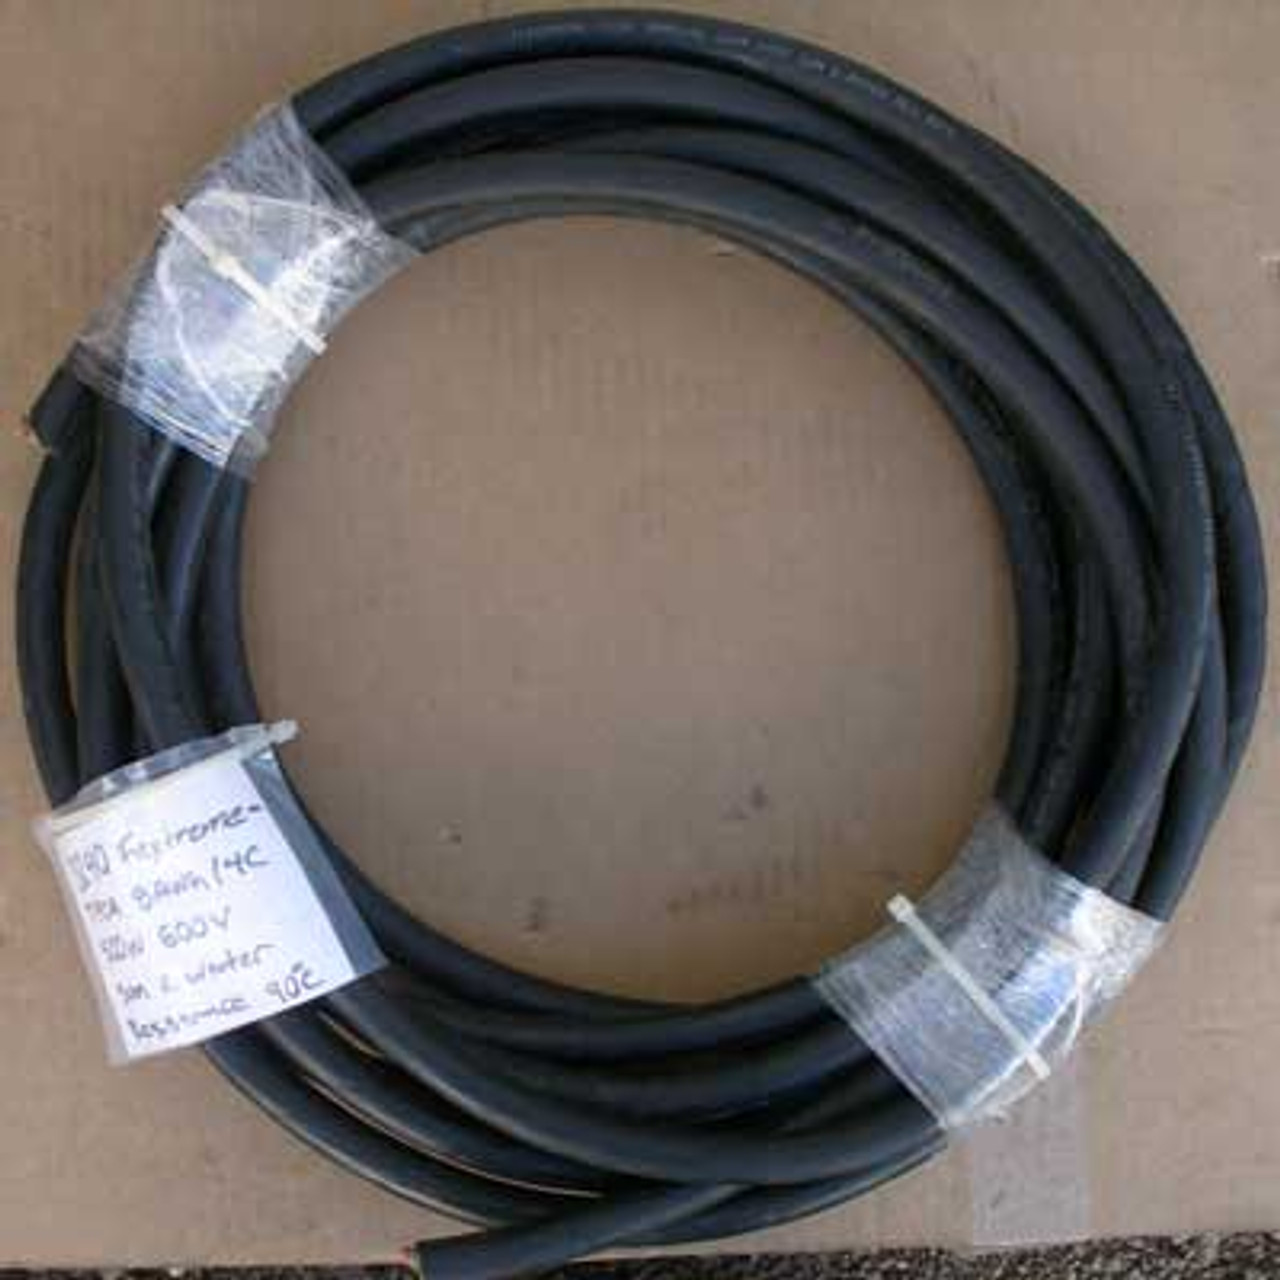 Flextreme SOOW 600V TFCA 8 AWG 14C Sun & Water Res 90 Deg Cable-35' - New